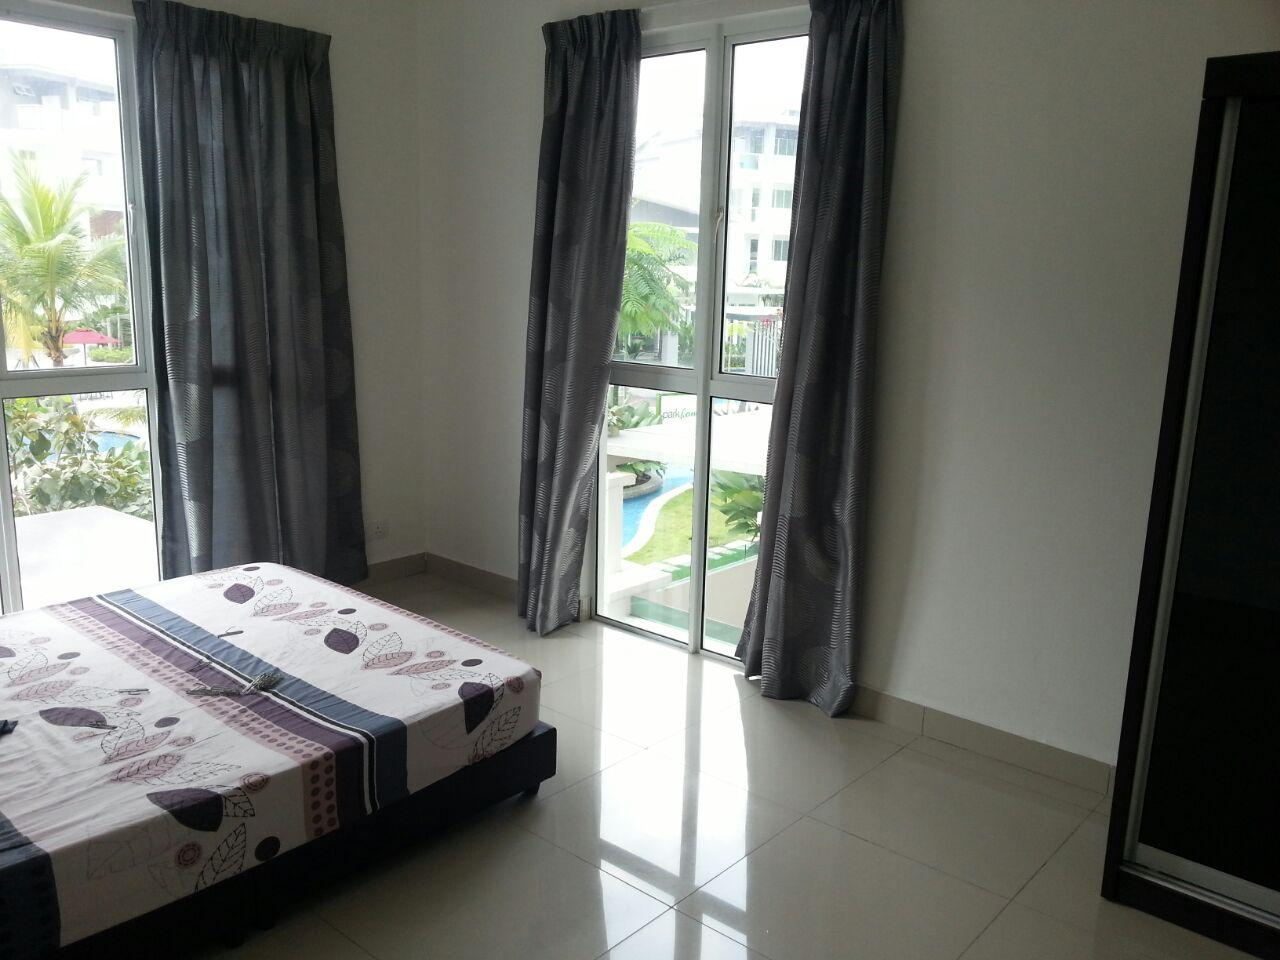 Subang Parkhomes Condo for sale, Pool View, 2 Car Parks, SS 19